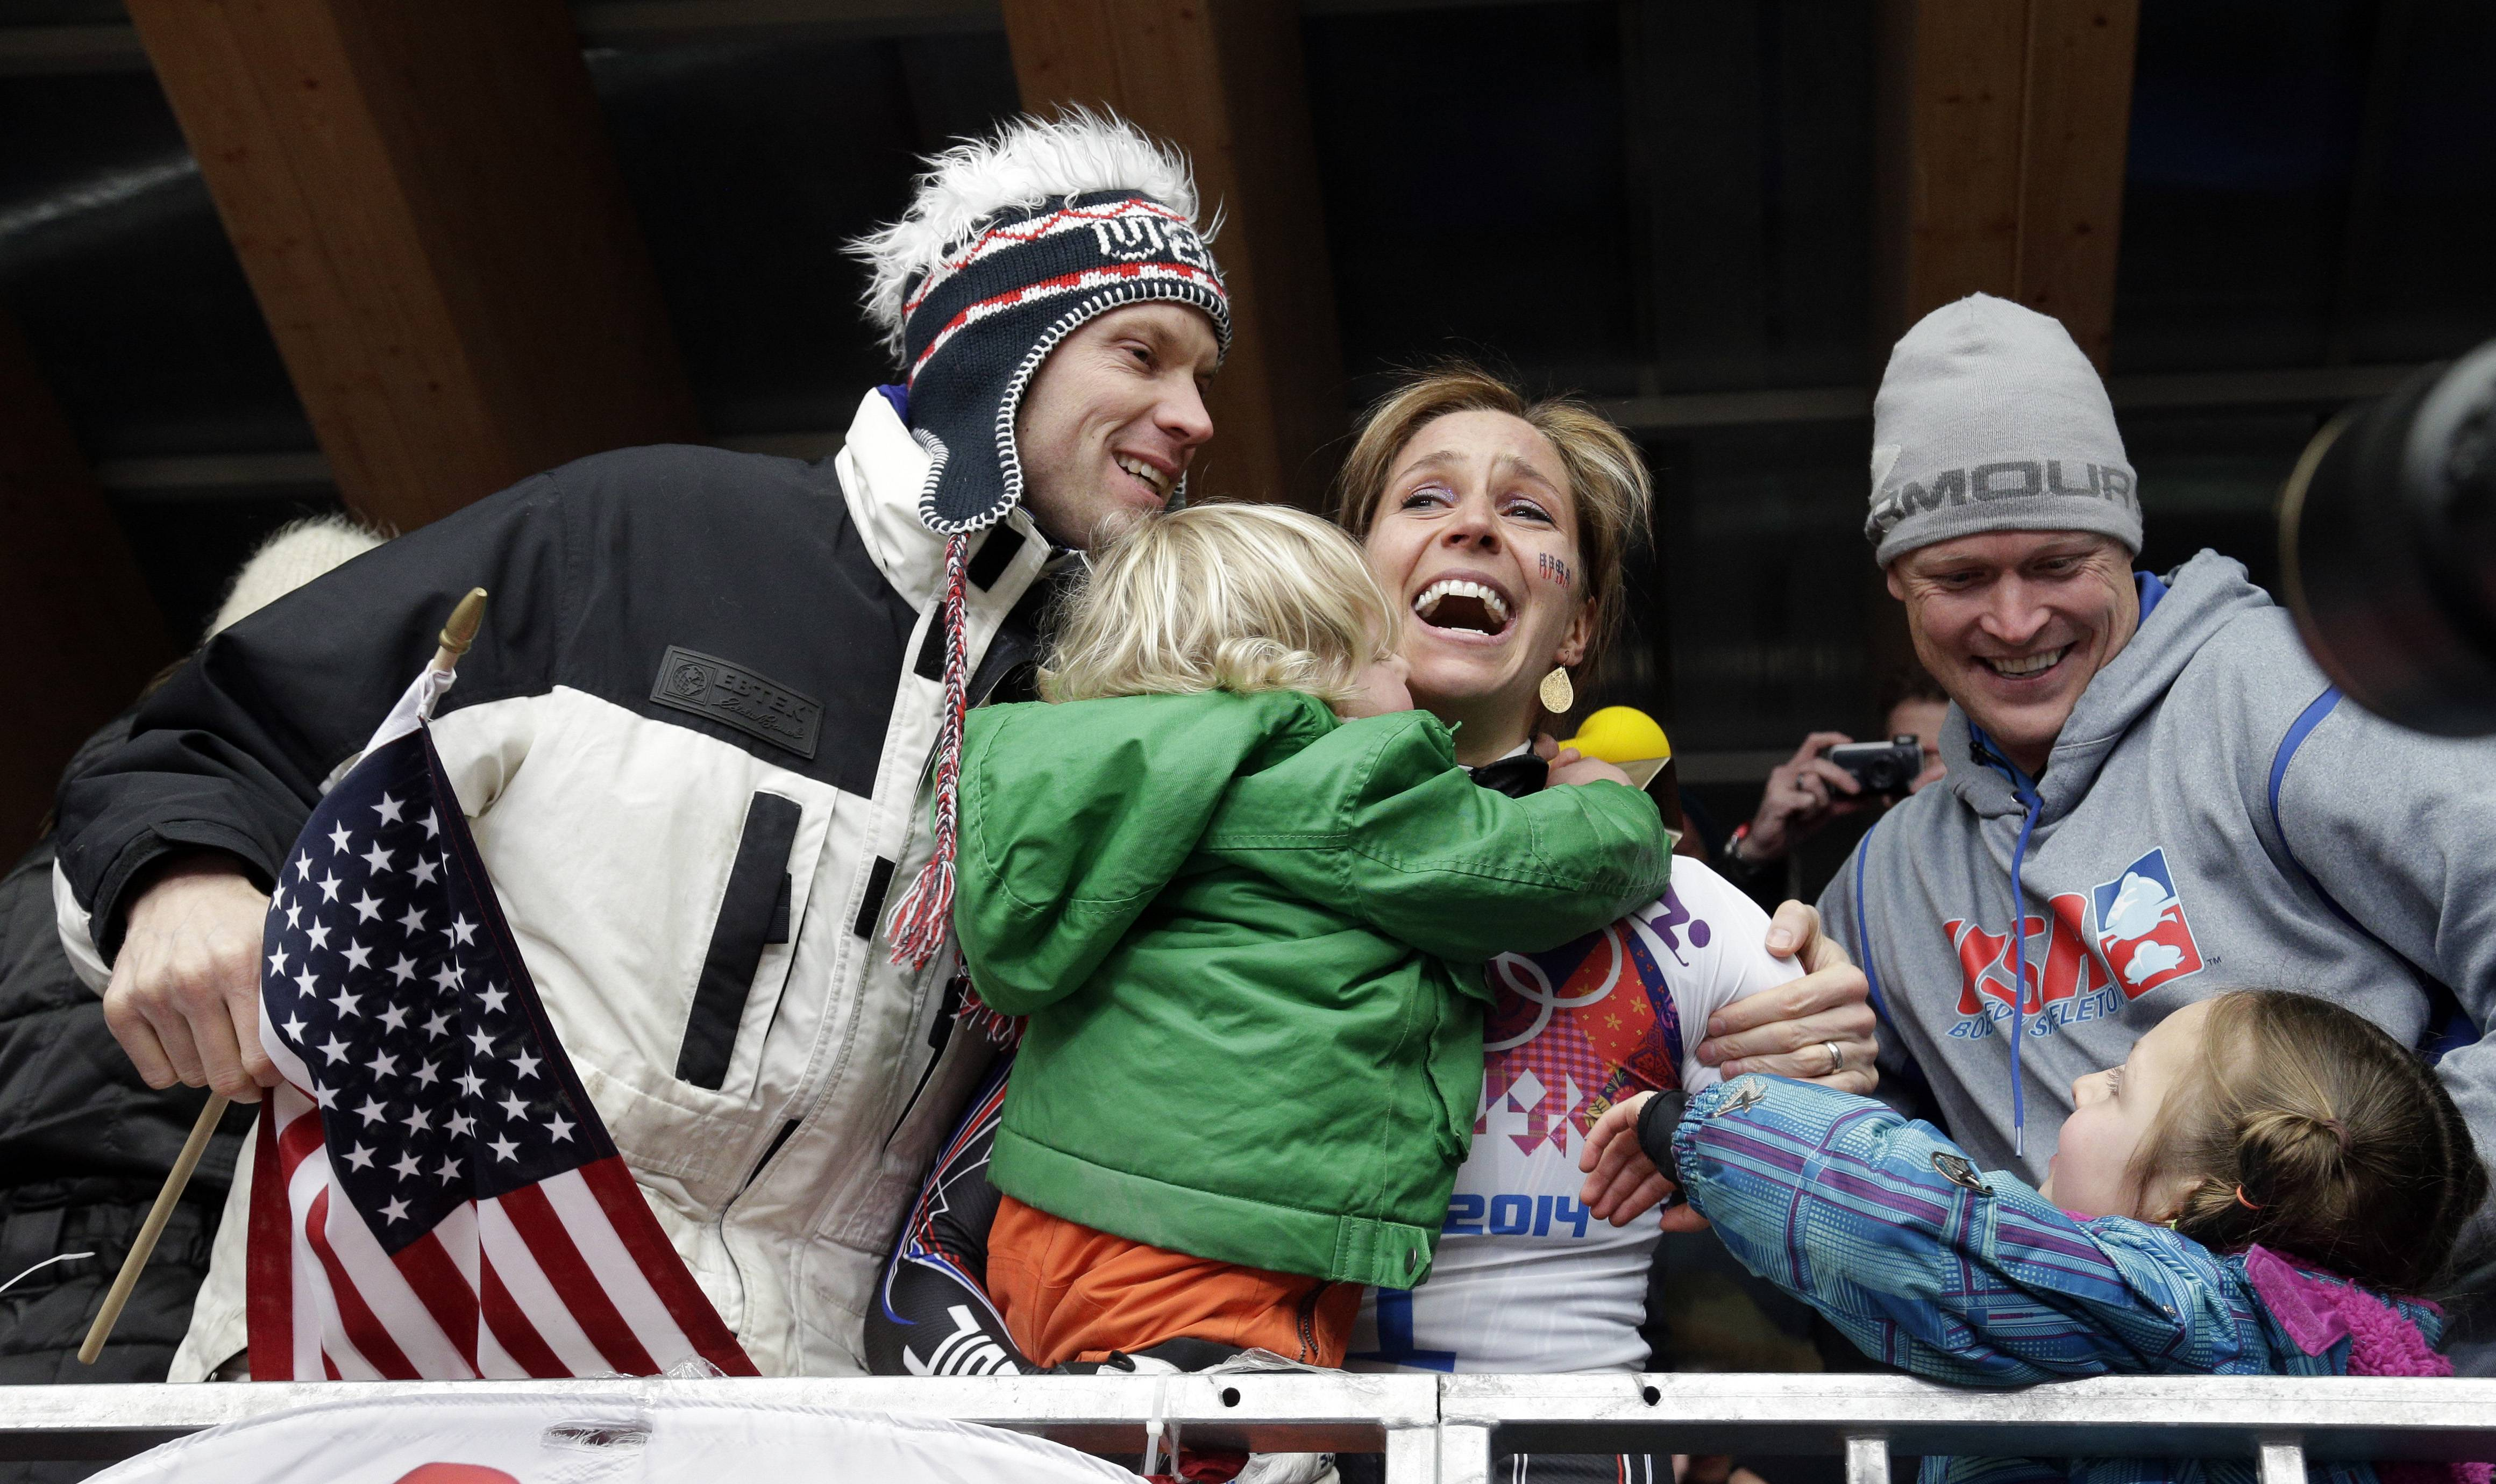 Noelle Pikus-Pace of the United States celebrates with her husband, Janson Pace, right, and her children, Traycen, left, and Lacee, lower right, after she won the silver medal during the women's skeleton competition.